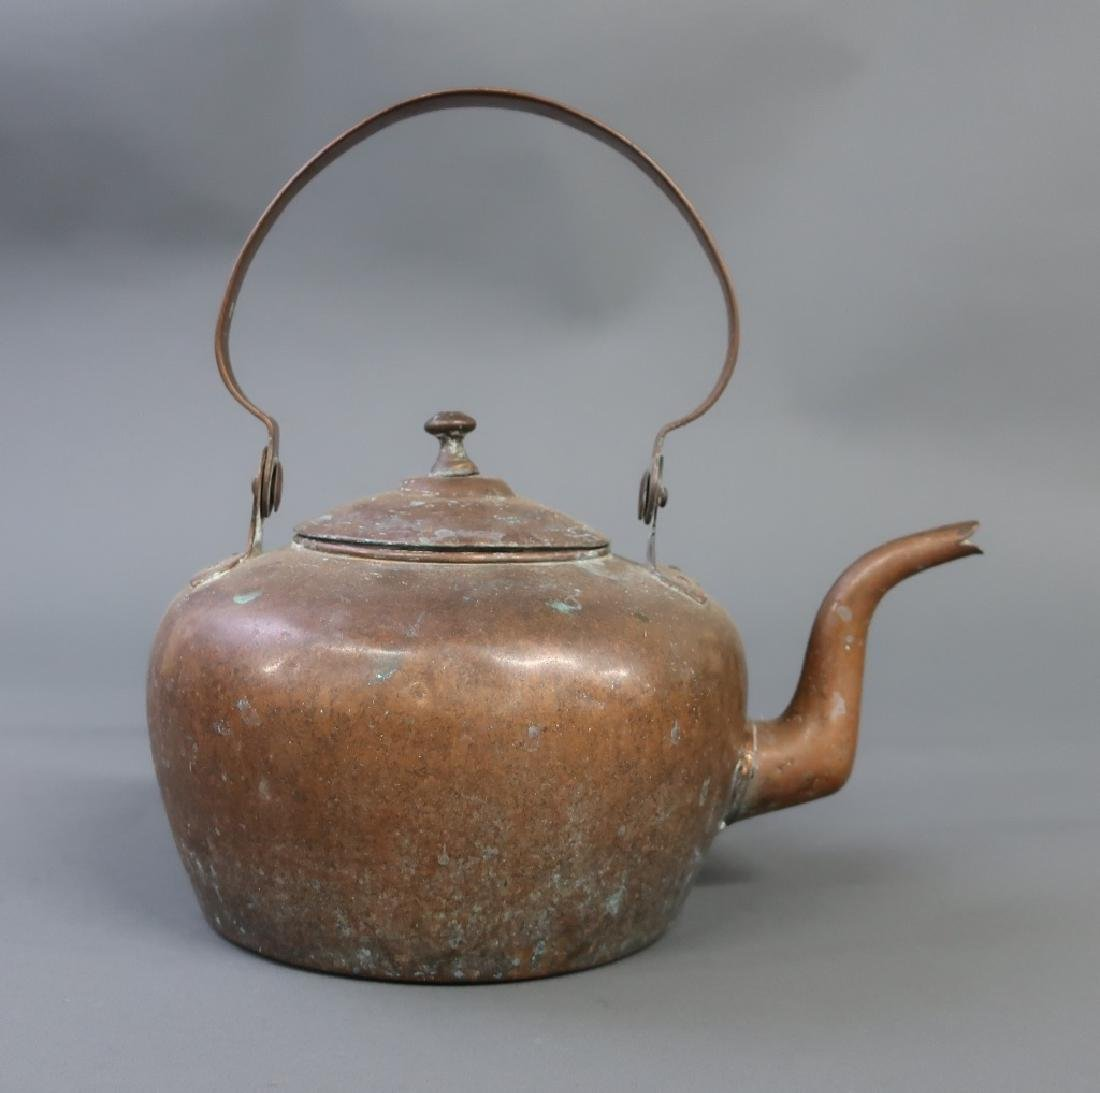 American Copper Kettle, Early 19th c.